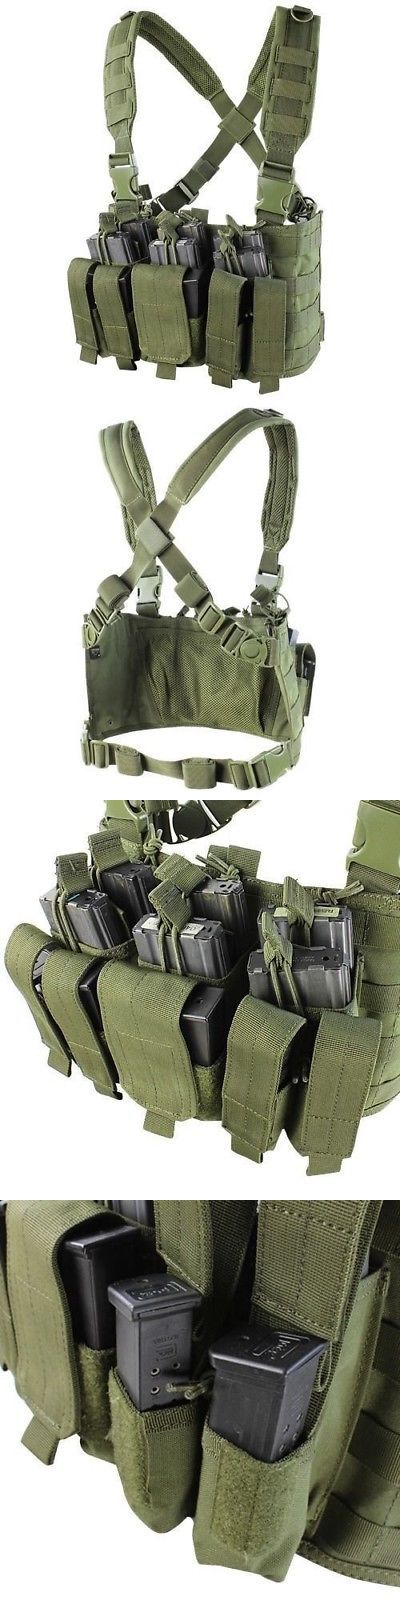 Chest Rigs and Tactical Vests 177891: Condor Mcr5 Recon Molle Chest Rig Od Harness Holds 8 Ar-15 Rifle And 6 Pistol Mags -> BUY IT NOW ONLY: $35.95 on eBay!